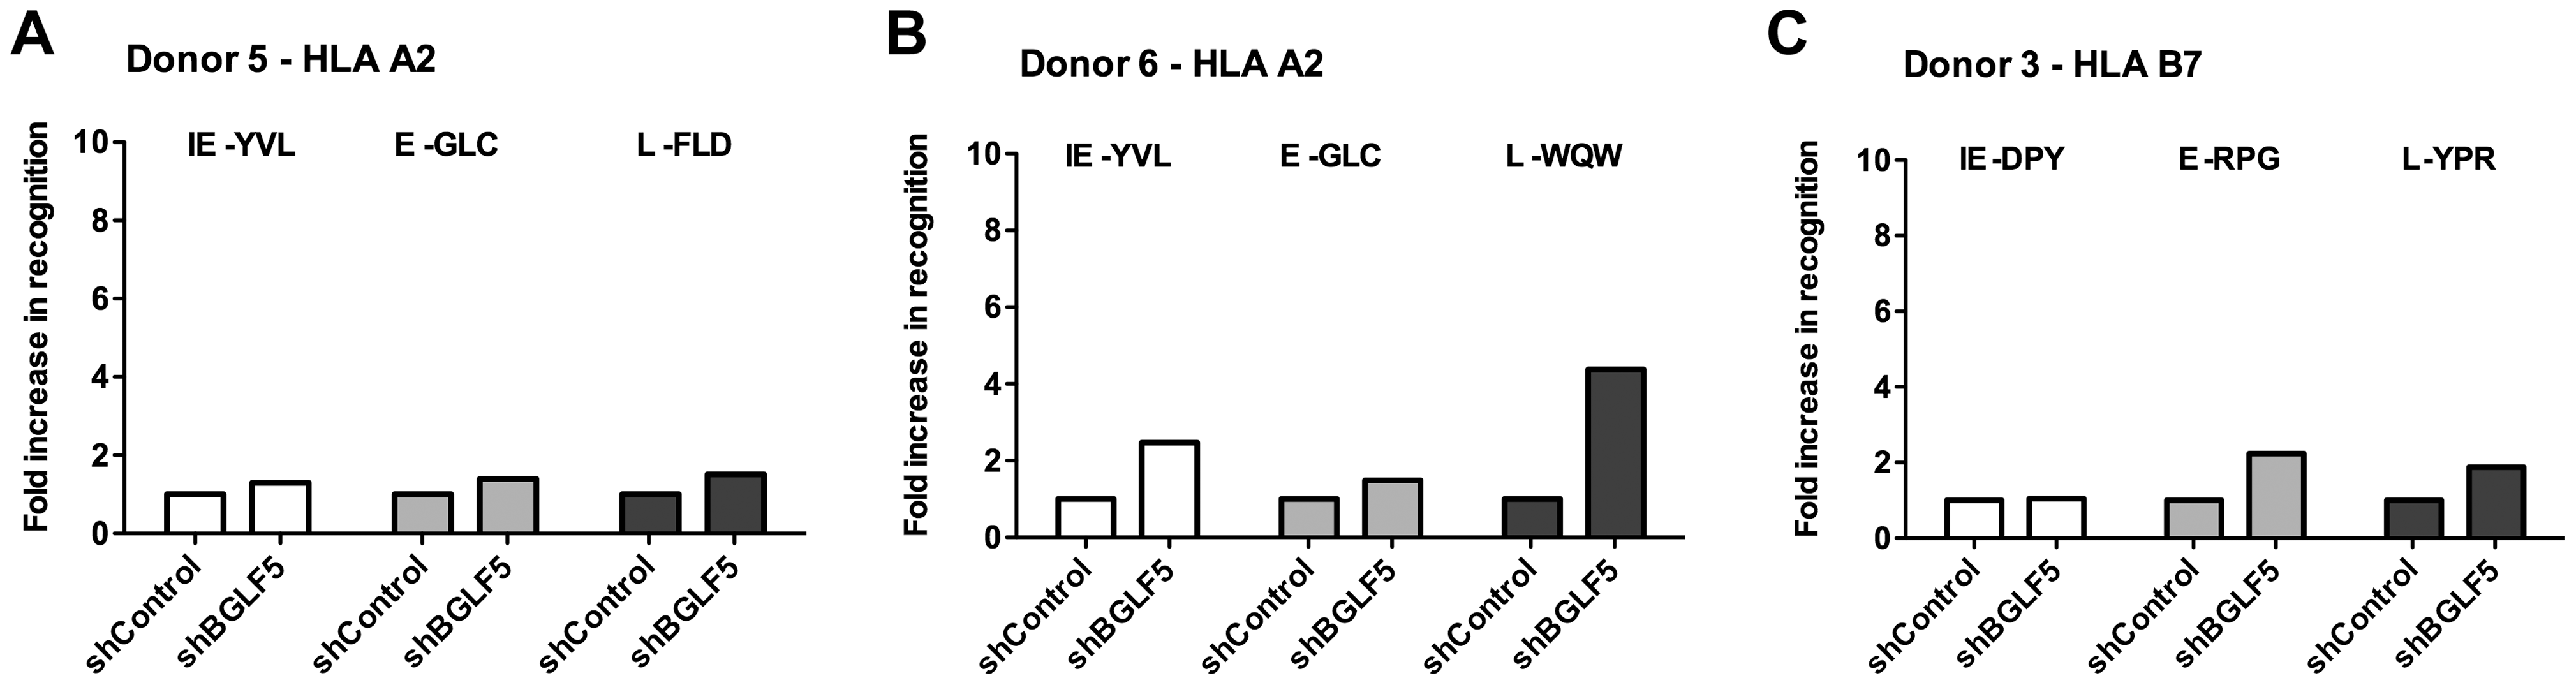 BGLF5 knockdown results in minimal increases in epitope recognition.